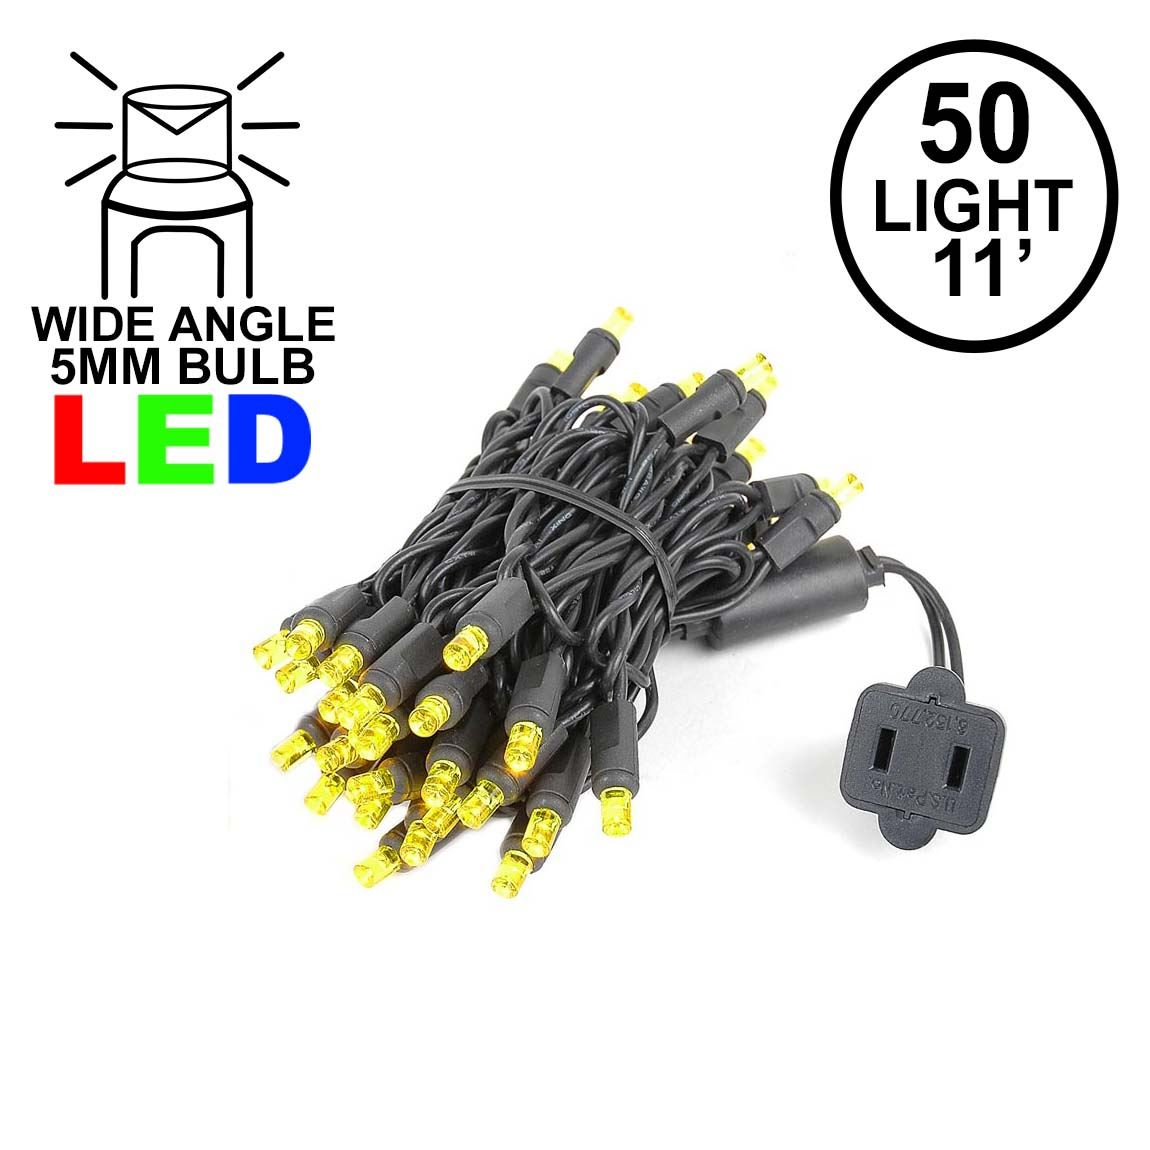 Picture of 50 LED Yellow LED Christmas Lights 11' Long on Black Wire